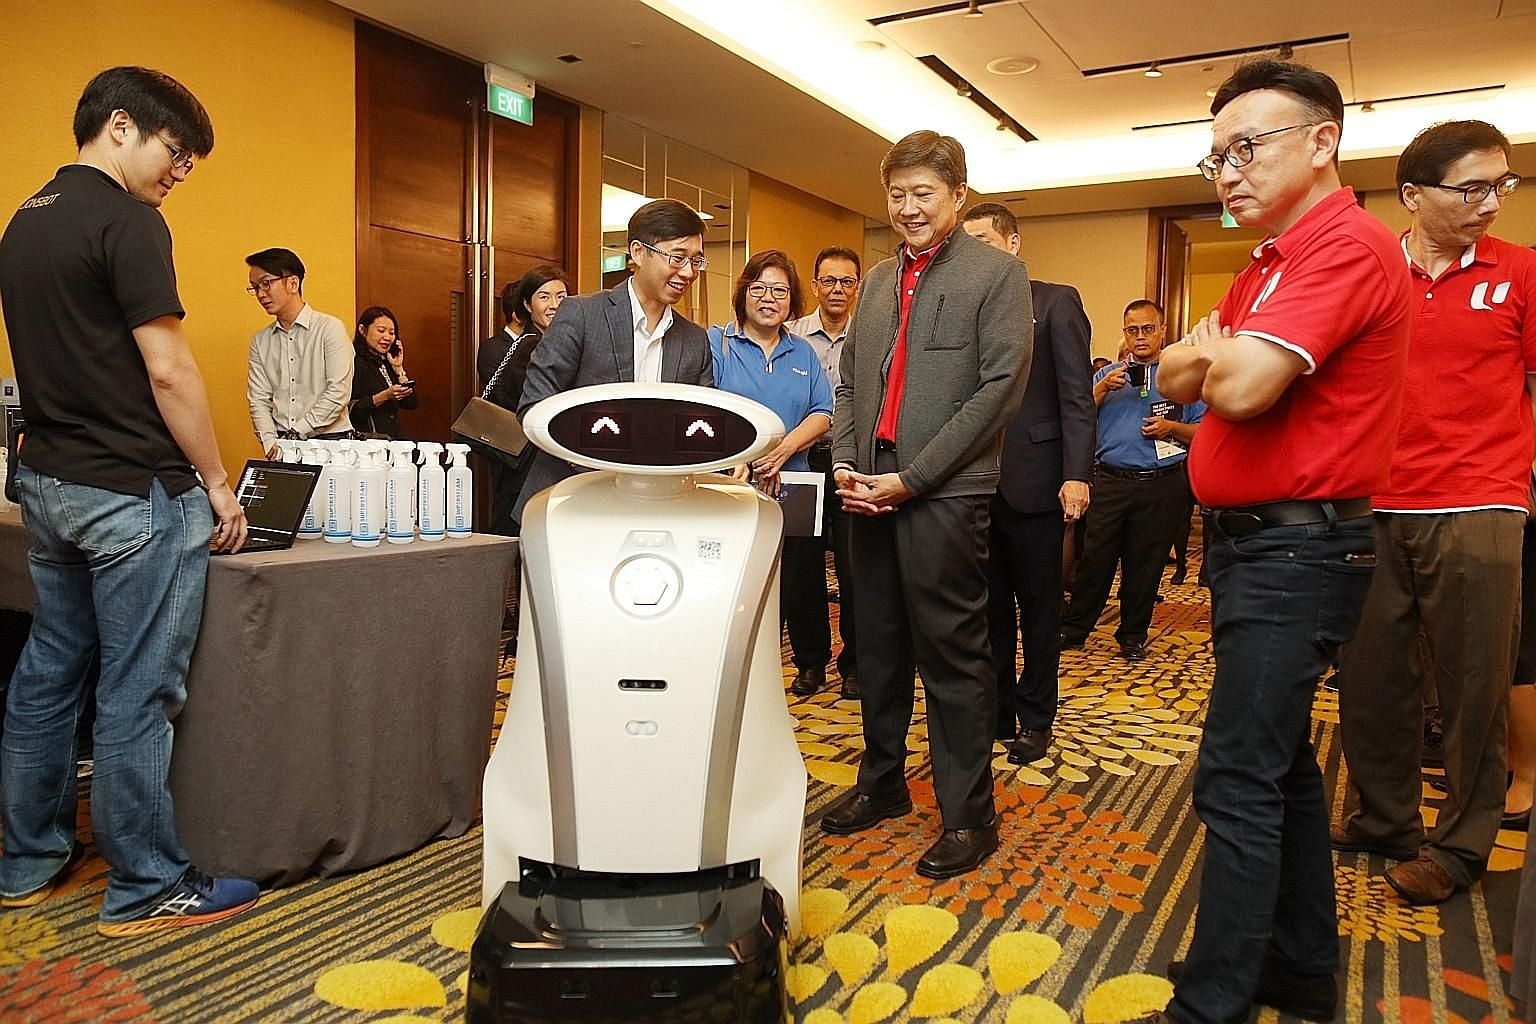 NTUC secretary-general Ng Chee Meng (centre) observing Ella, a robot that vacuums carpeted areas and greets guests in hotel environments, at the Copthorne King's Hotel yesterday.